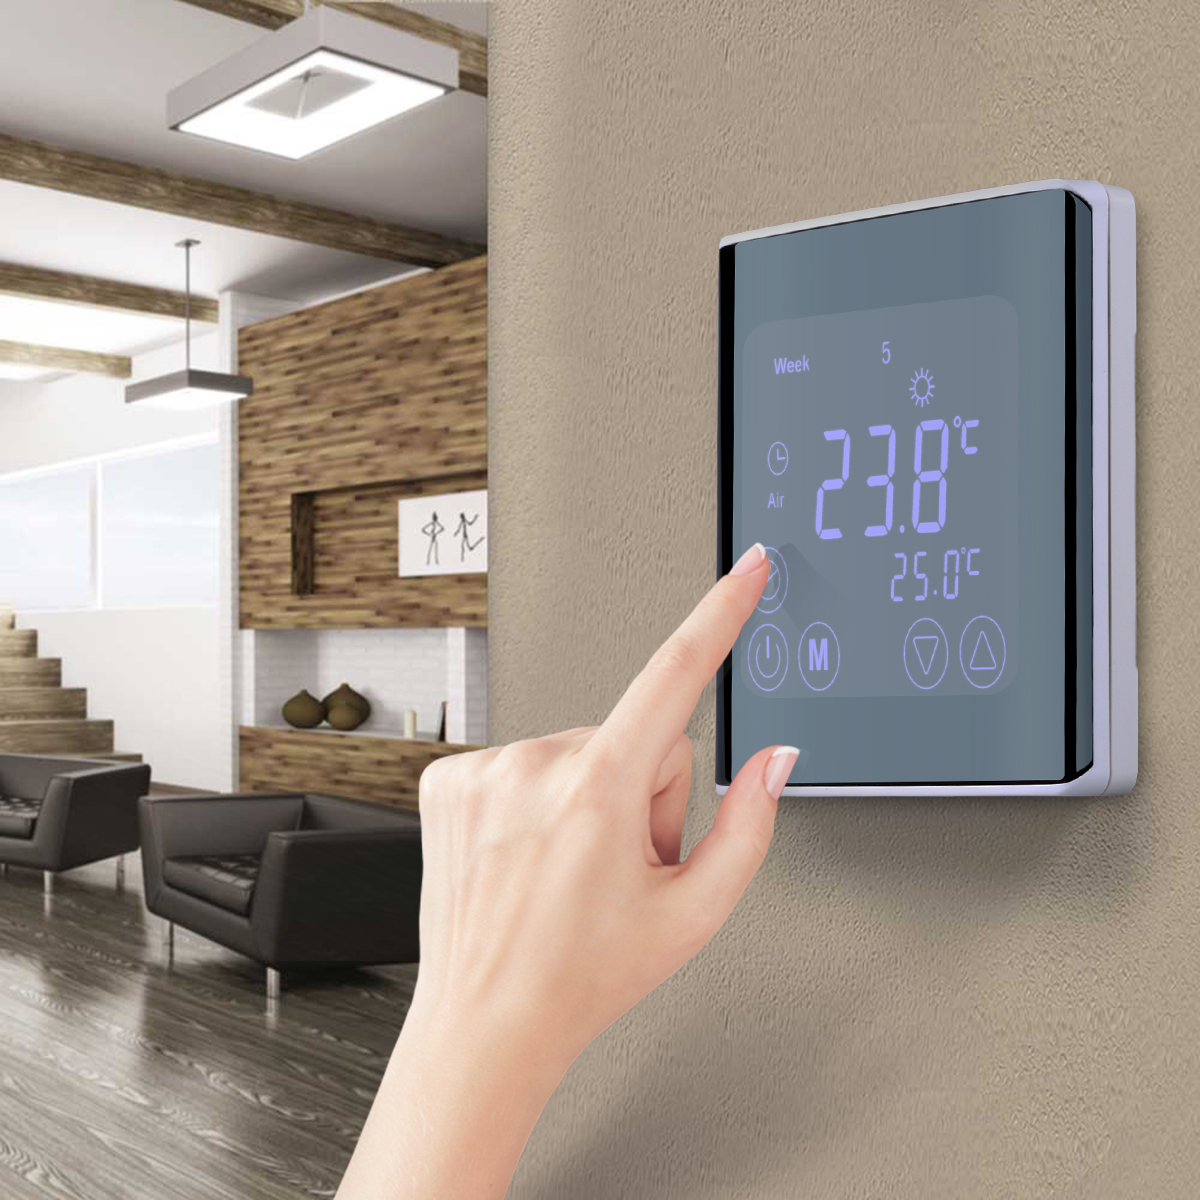 Weekly Programmable Underfloor Heating Thermostat LCD Touch Screen Room Temperature Controller Thermostat White Backlight weekly programmable underfloor heating thermostat lcd touch screen room temperature controller thermostat white backlight